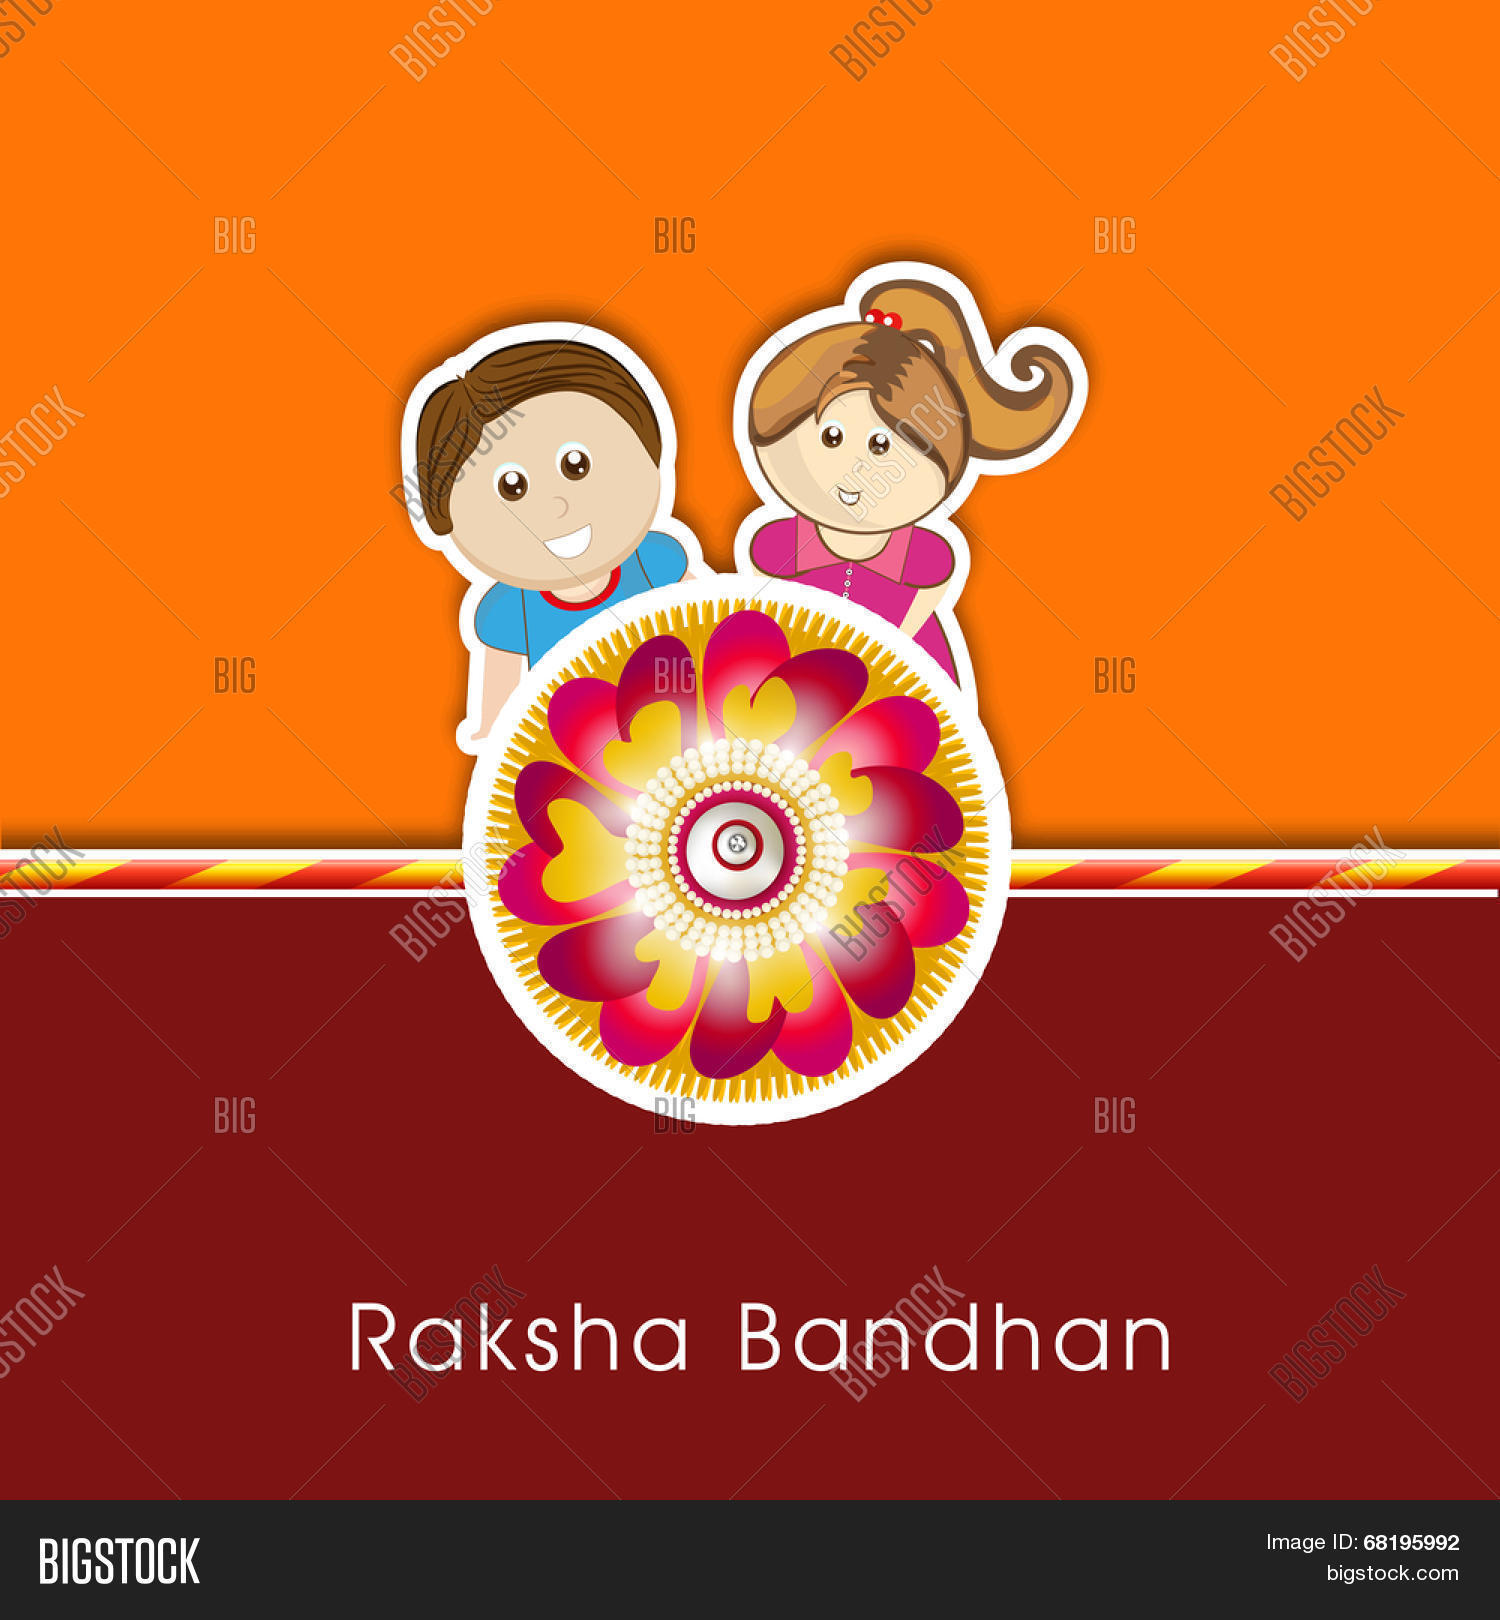 Raksha bandhan celebrations vector photo bigstock raksha bandhan celebrations greeting card design with rakhi and cute little brother and sister on orange kristyandbryce Image collections